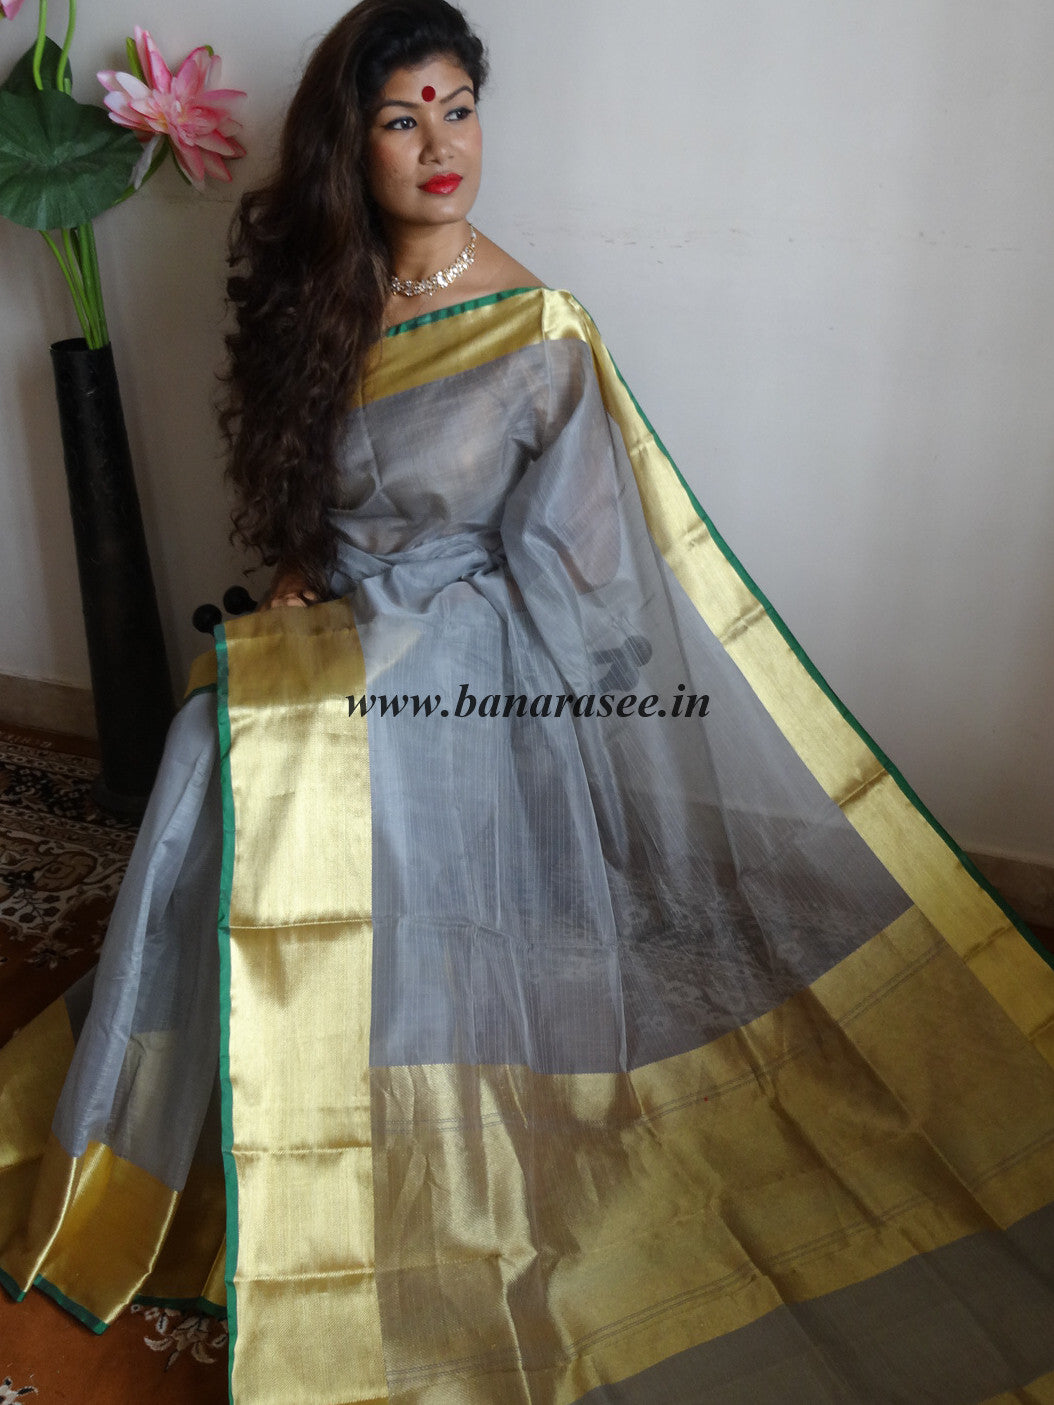 Banarasee/Banarasee Pure Handloom Silk Cotton Sari With Golden Border Plain-Grey